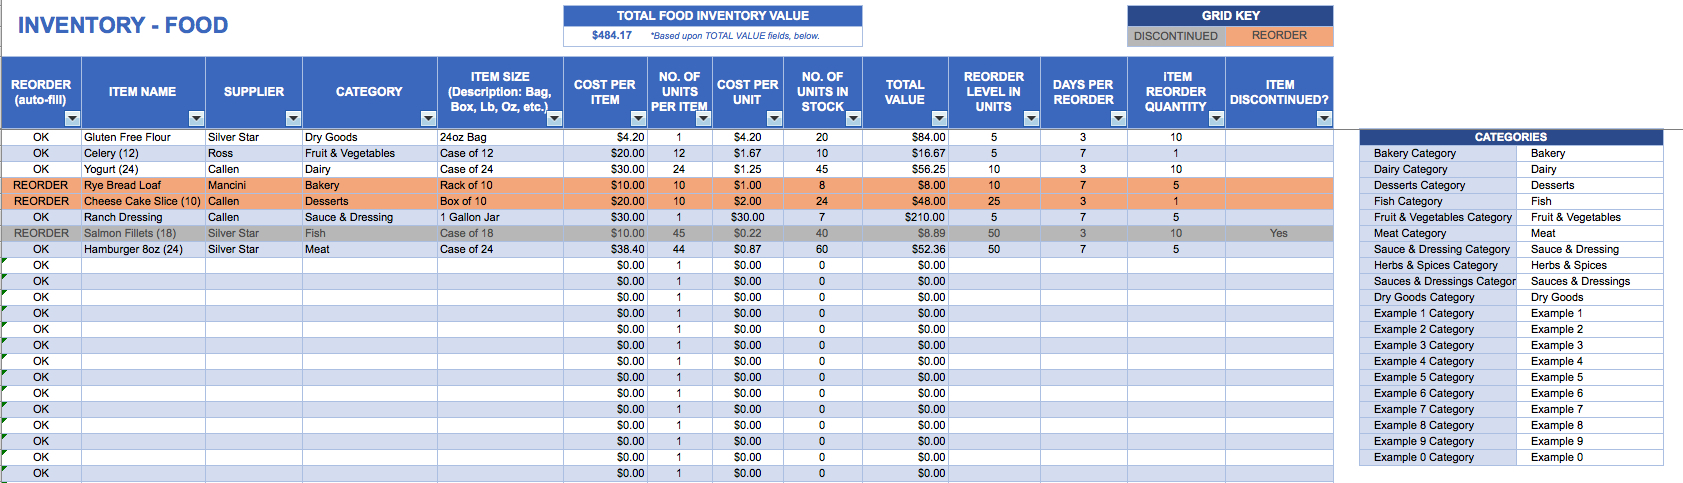 Ppe Inventory Spreadsheet Inside Ppe Tracking Spreadsheet Food Inventory  Emergentreport